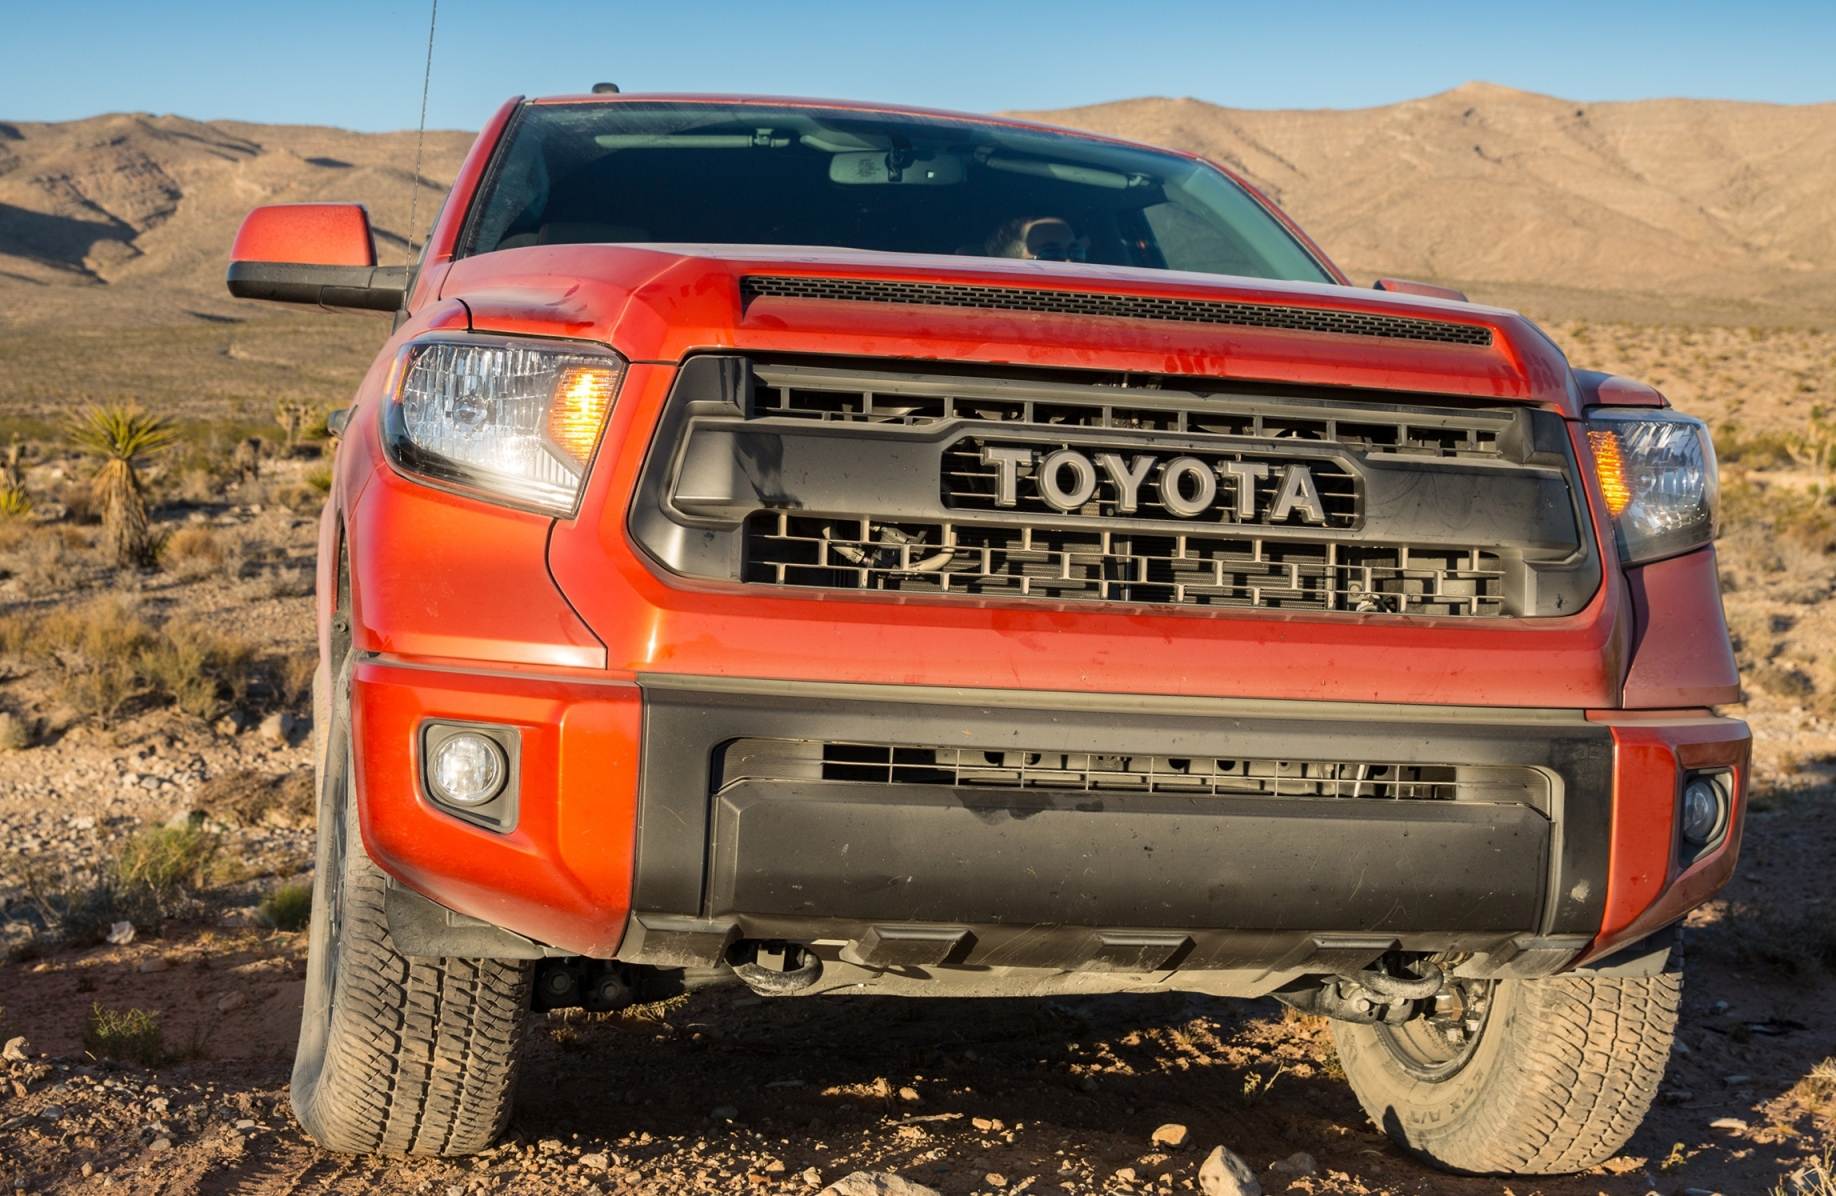 2015 toyota tundra trd pro will race in stock class in the 2014 tecate score baja 1000. Black Bedroom Furniture Sets. Home Design Ideas